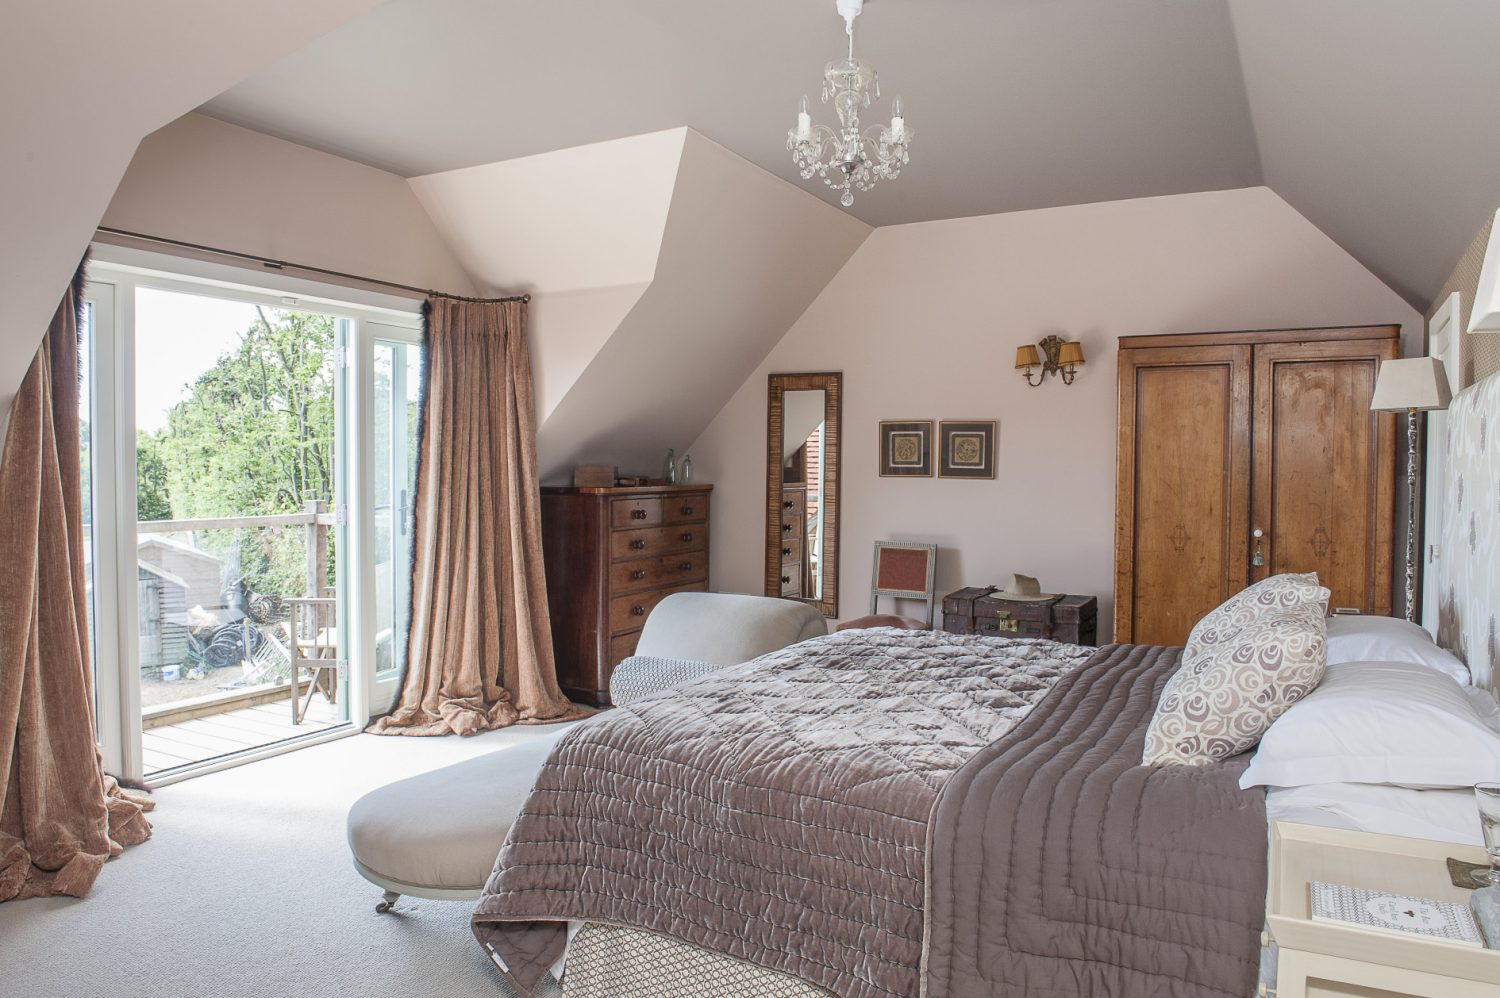 In the master bedroom, with its own balcony, the elegant bed is surrounded by a glowing mahogany chest of drawers and an elegant cherry gentleman's wardrobe